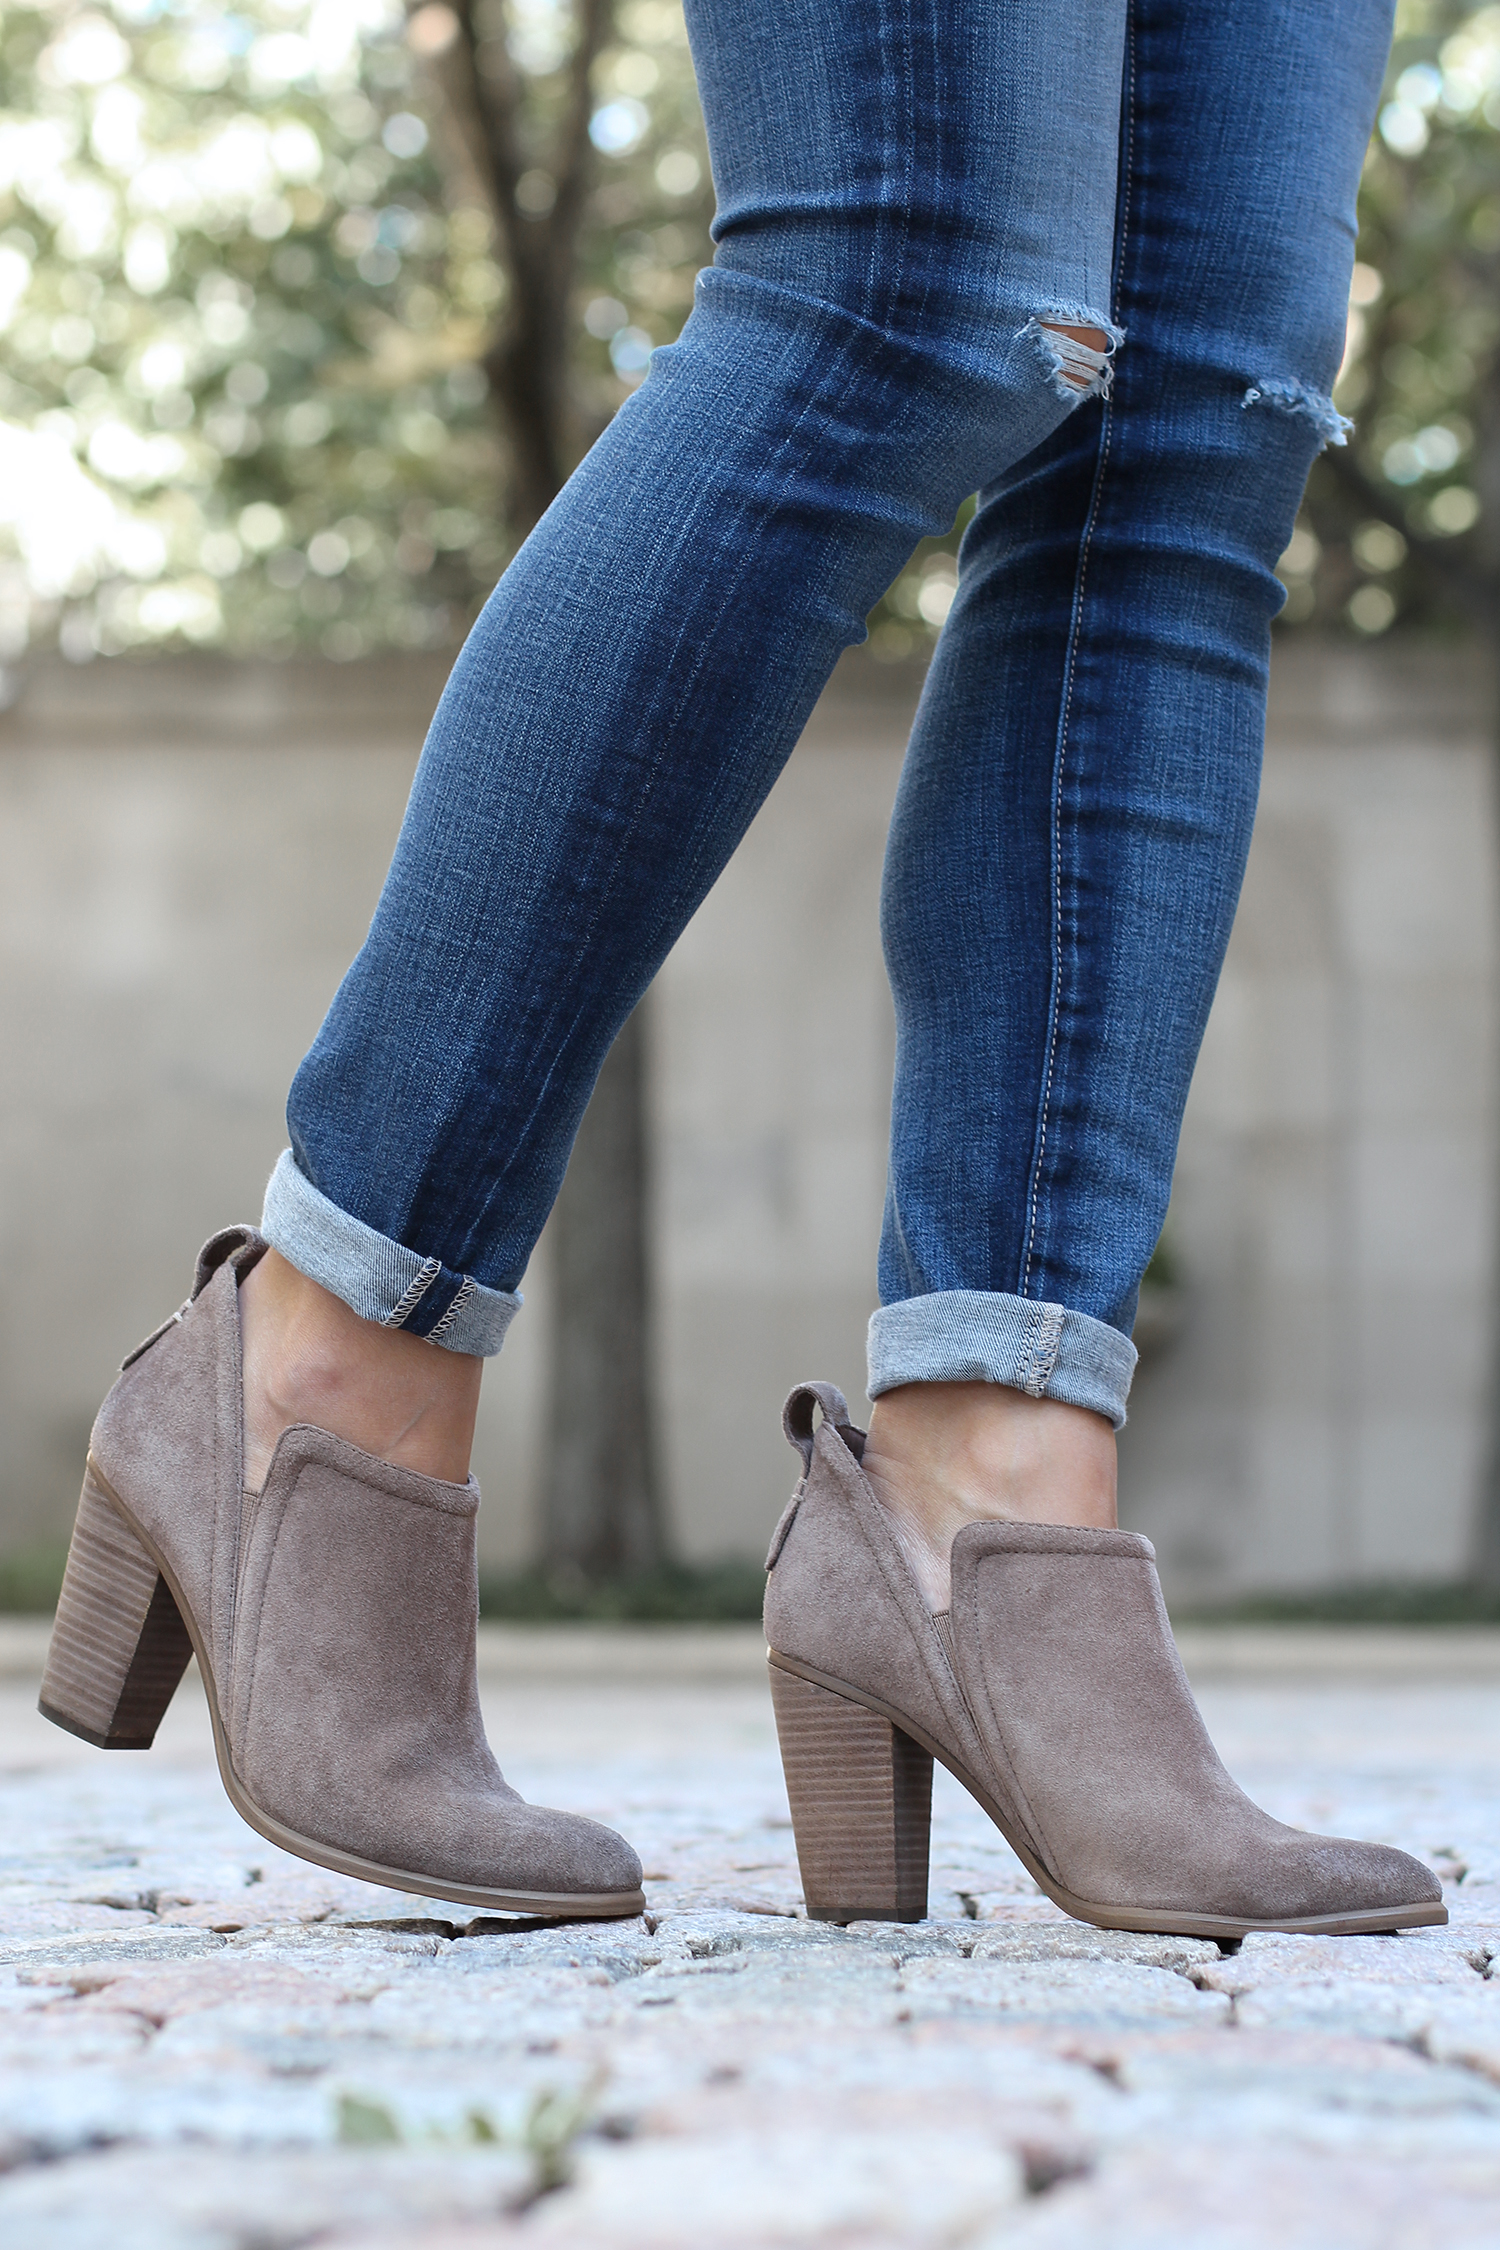 Vince Camuto Ankle Boots, How To Wear Ankle Boots